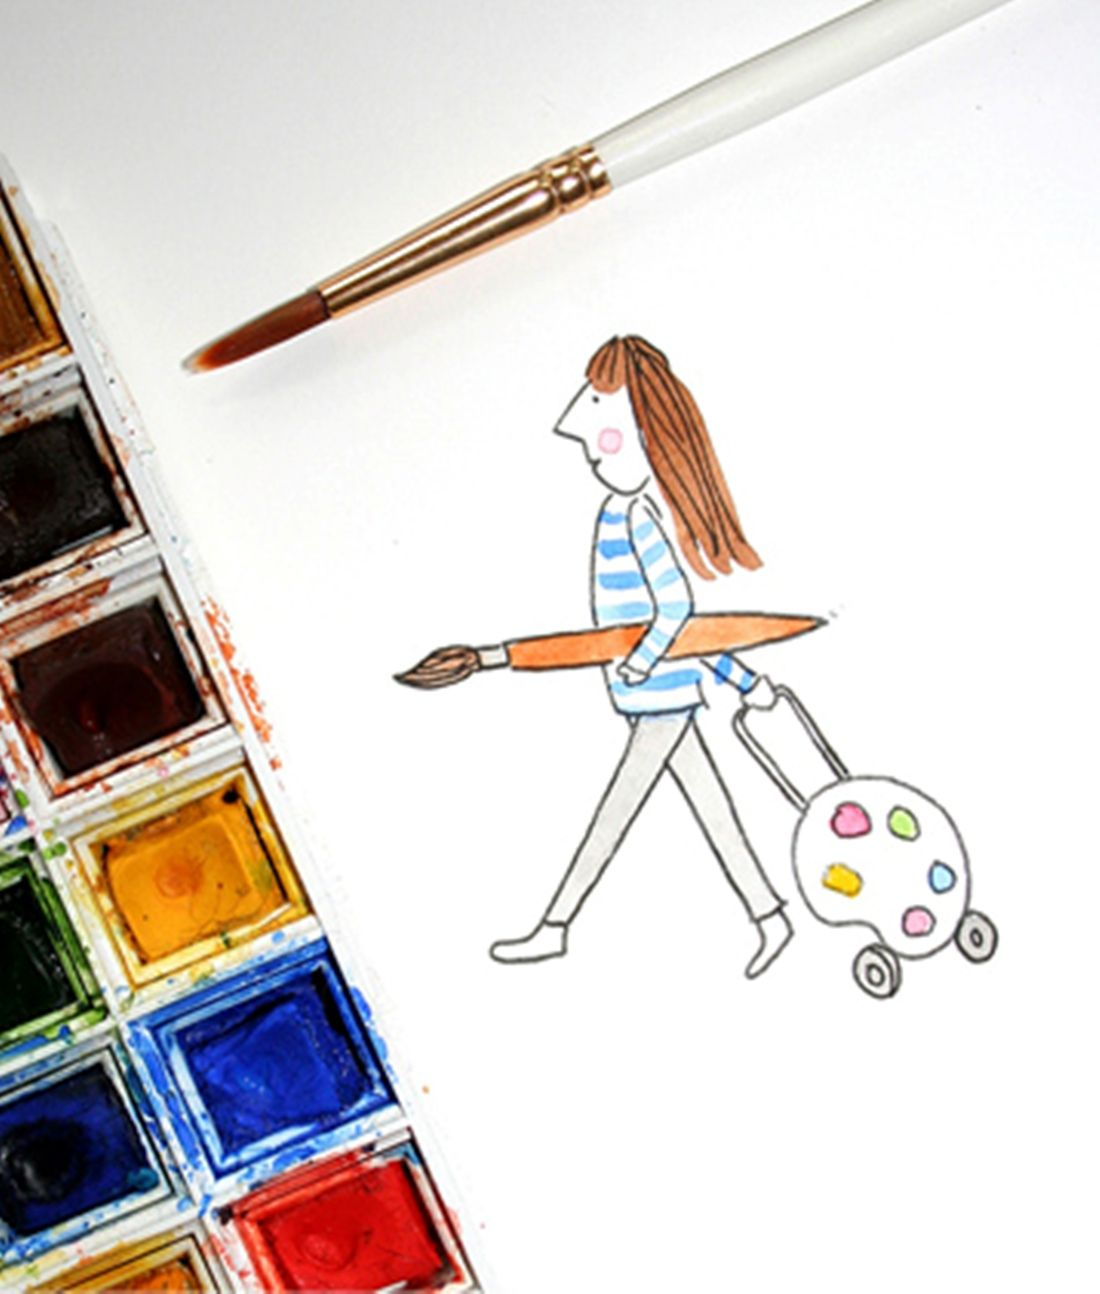 How To Paint With Watercolors For Beginner The Art 123